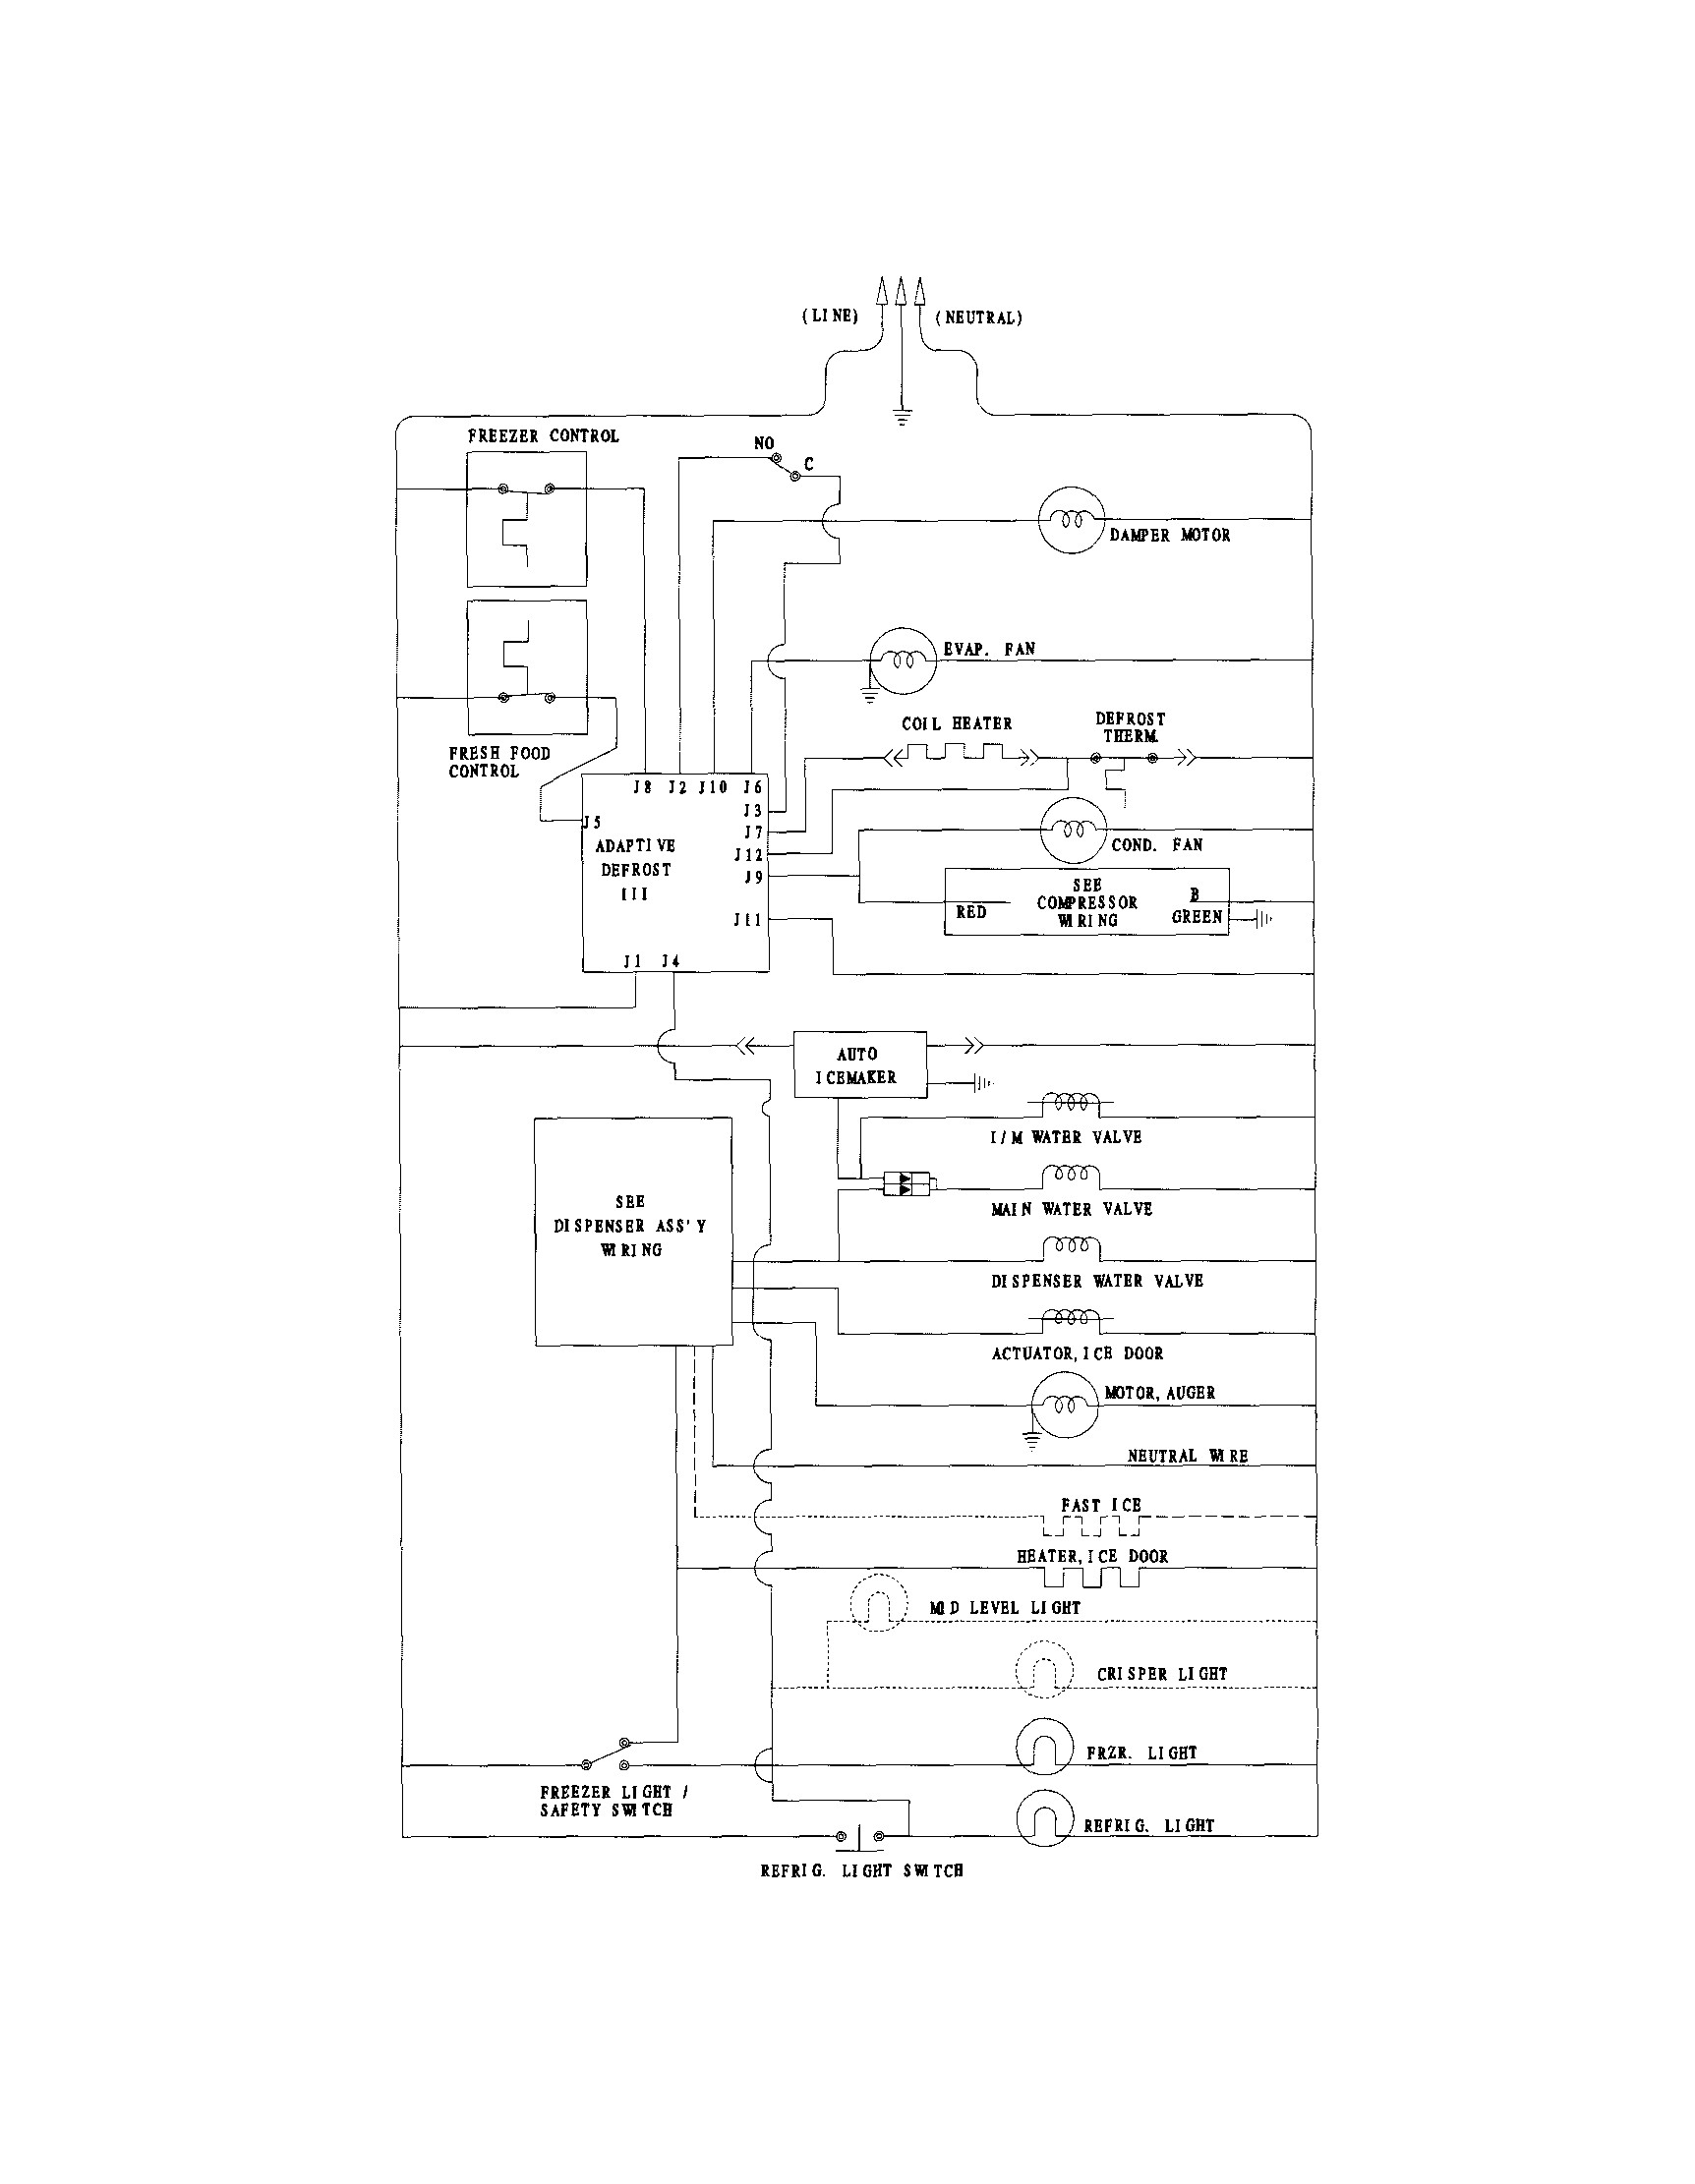 Frigidaire Ice Maker Wiring Diagram | Free Wiring Diagram on